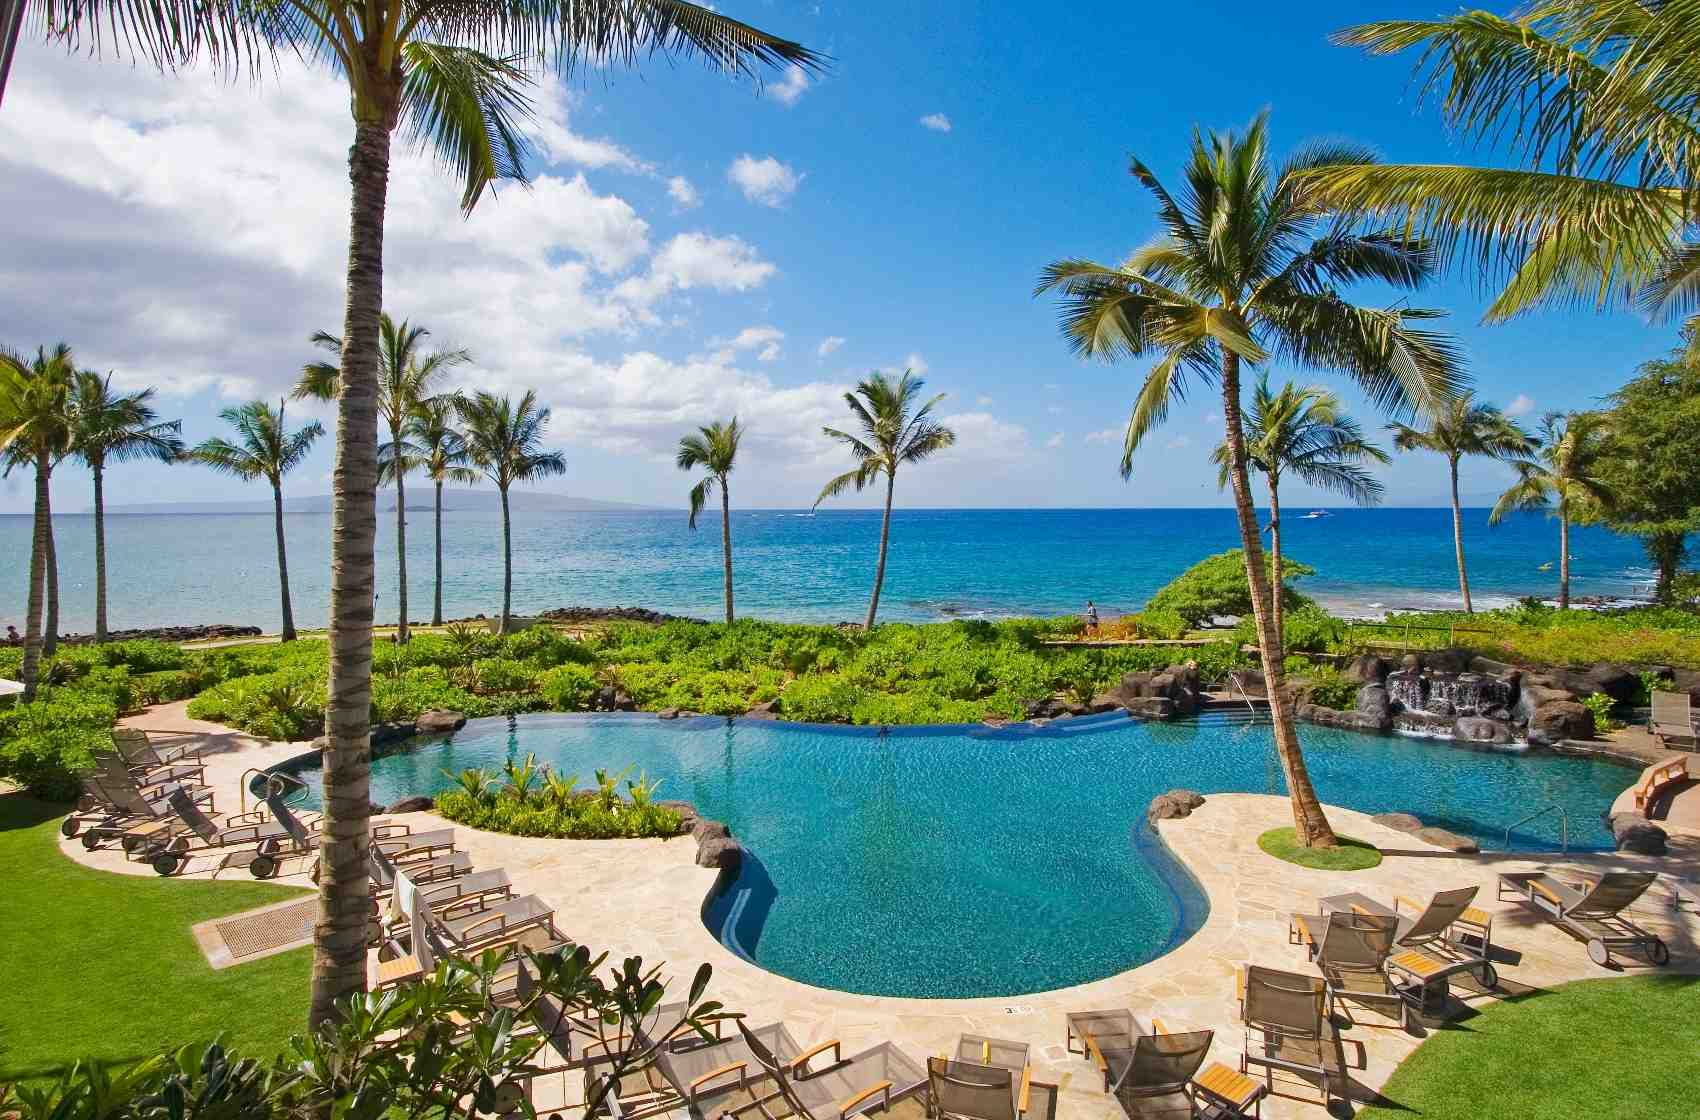 Maui vacations start here wailea beach villas travel for Nicest hotels in maui